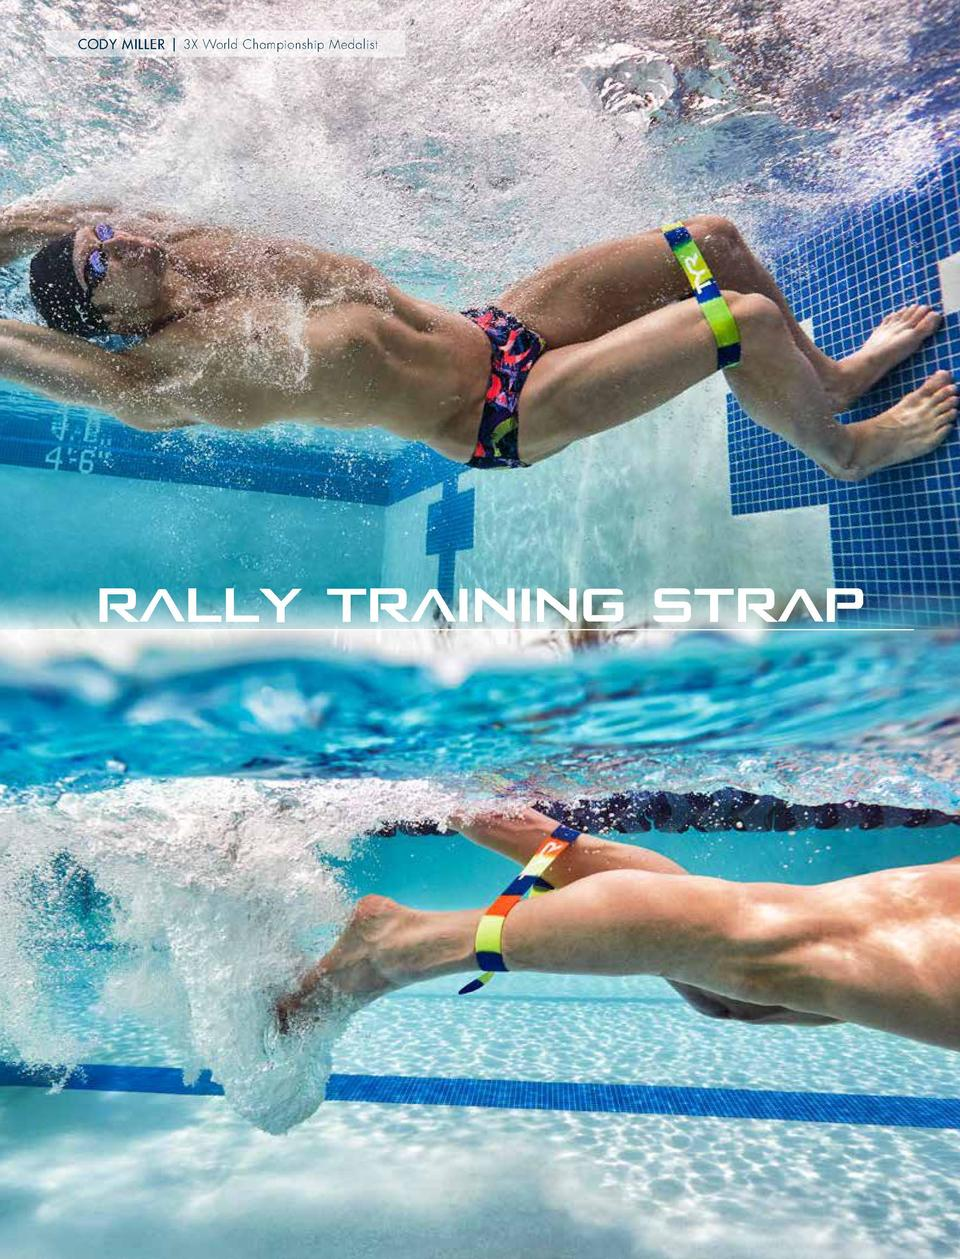 EQUIPMENT CODY MILLER   3X World Championship Medalist  TRAINING STRAP NEW STYLE  RALLY TRAINING STRAP LTAS RALLY TRAINING...